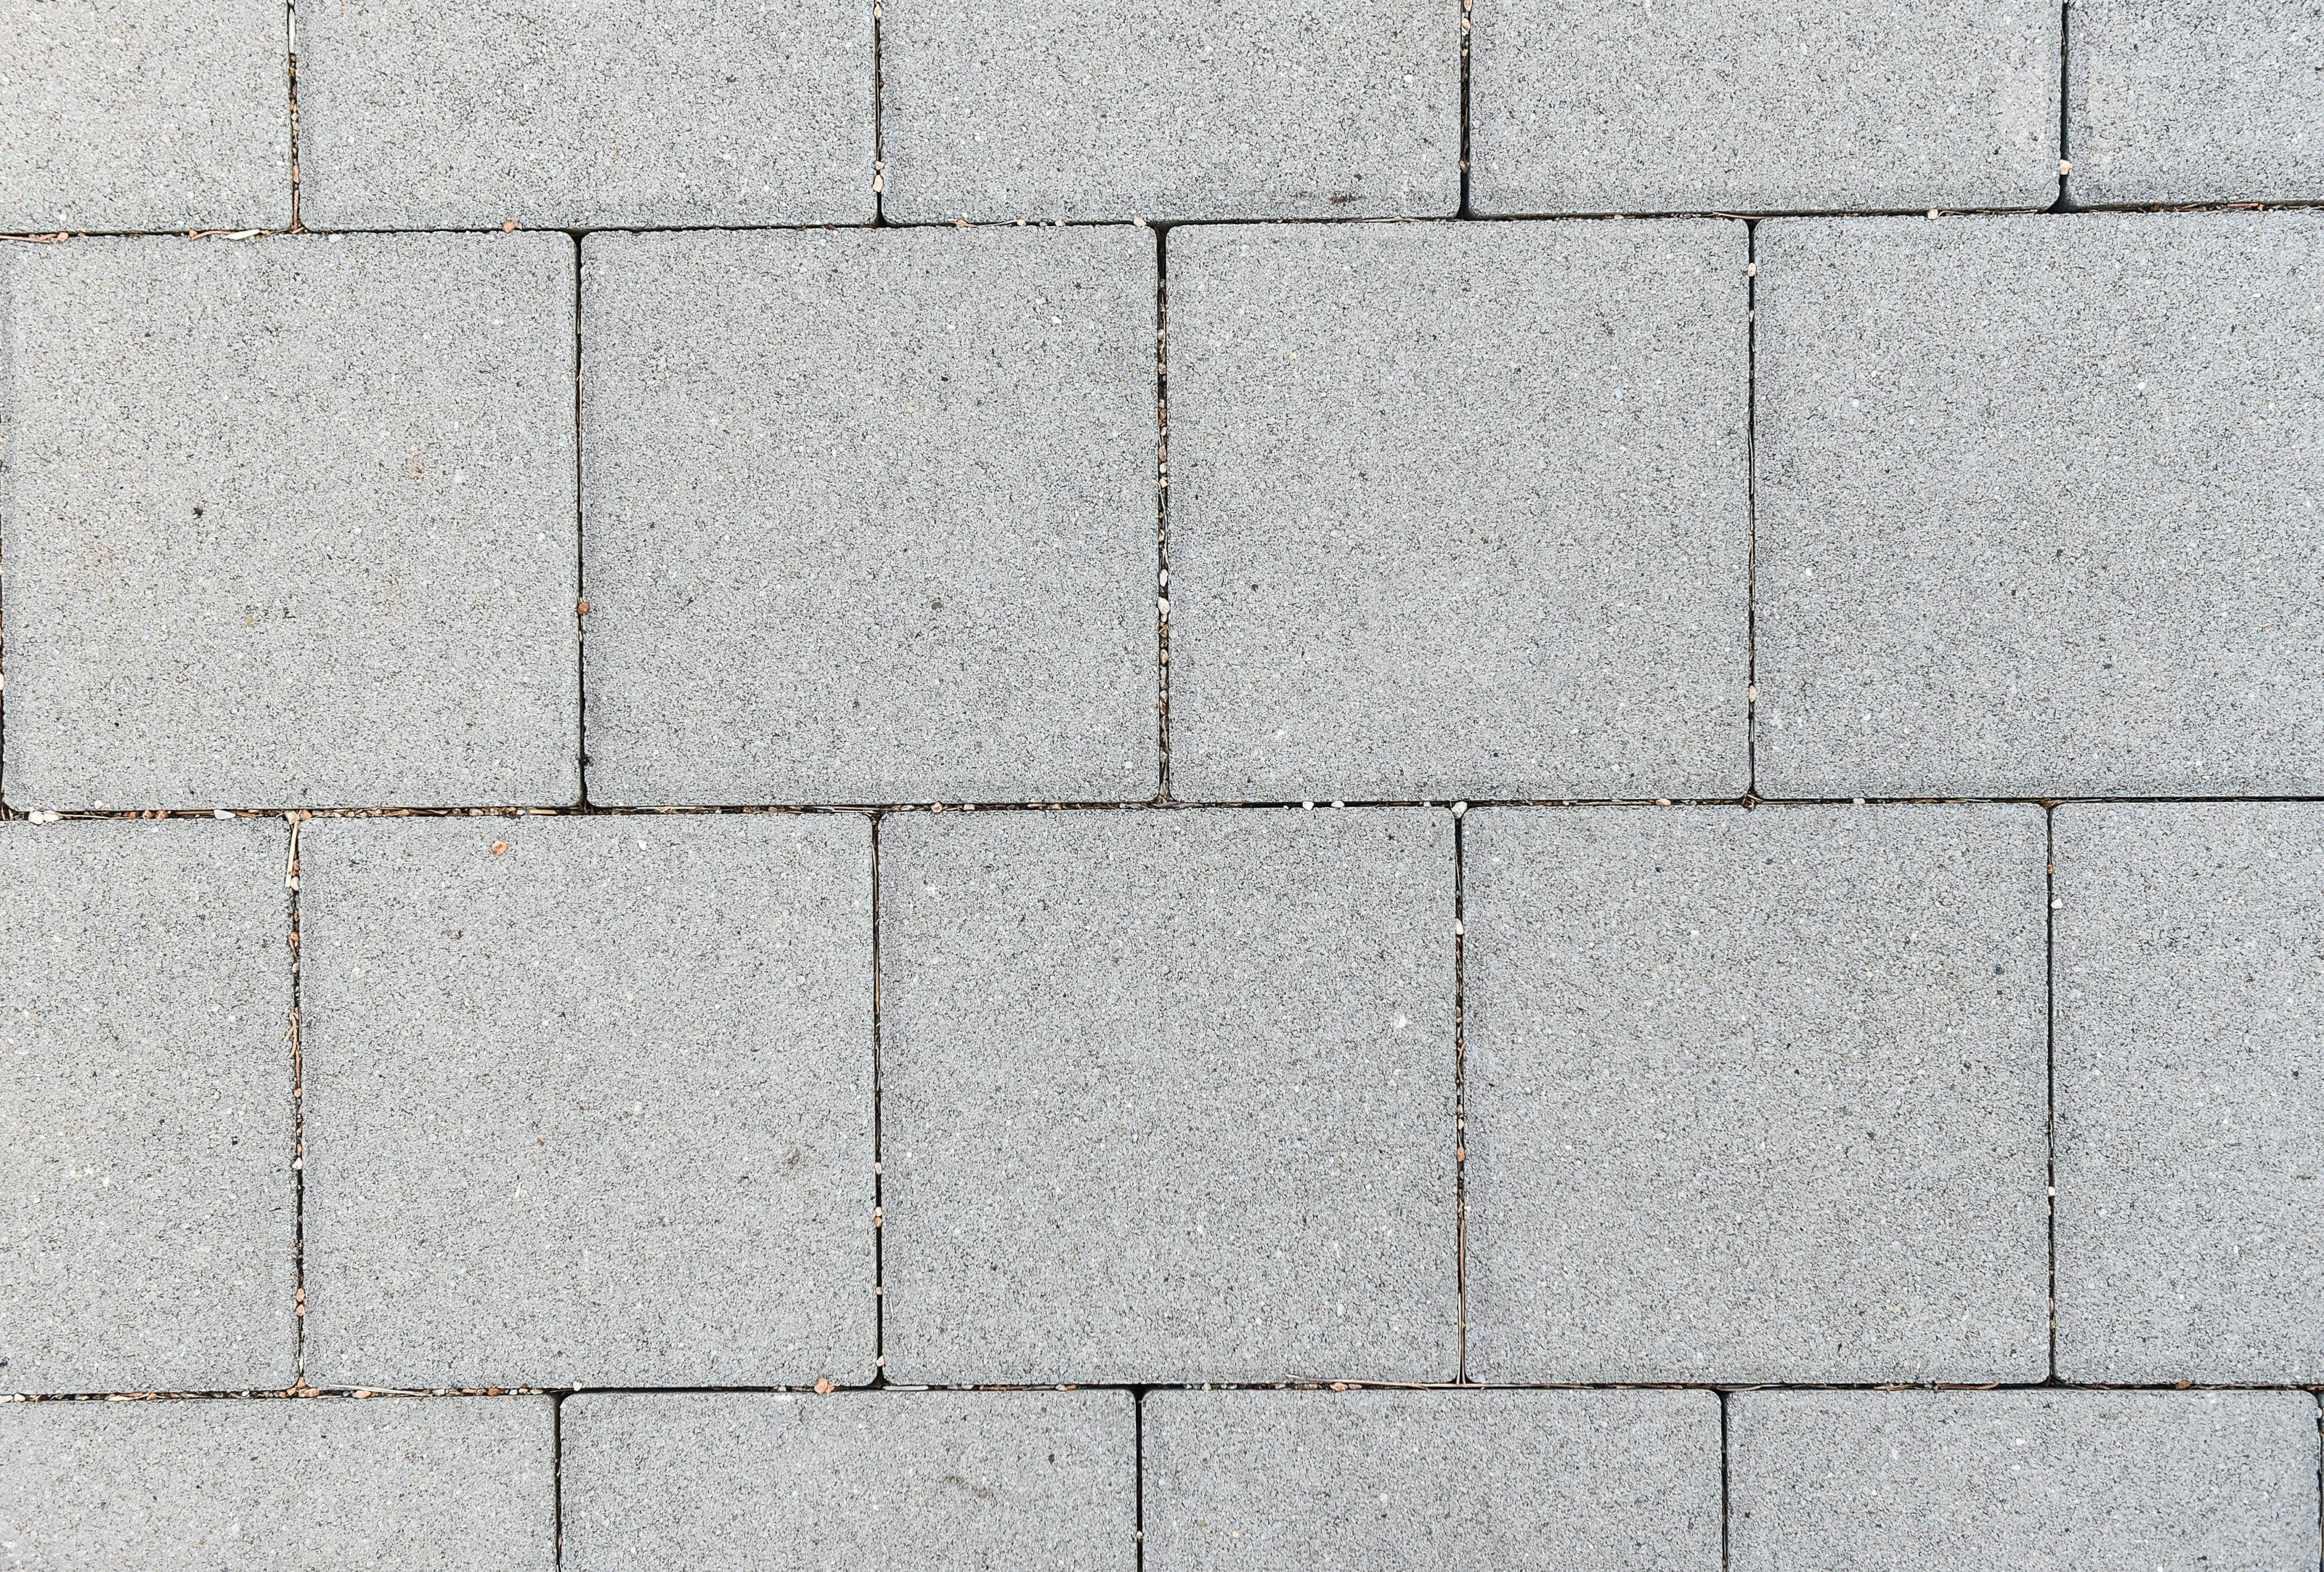 Concrete or cobble gray square pavement slabs or stones for floor, wall or path. Traditional fence, court, backyard or road paving.